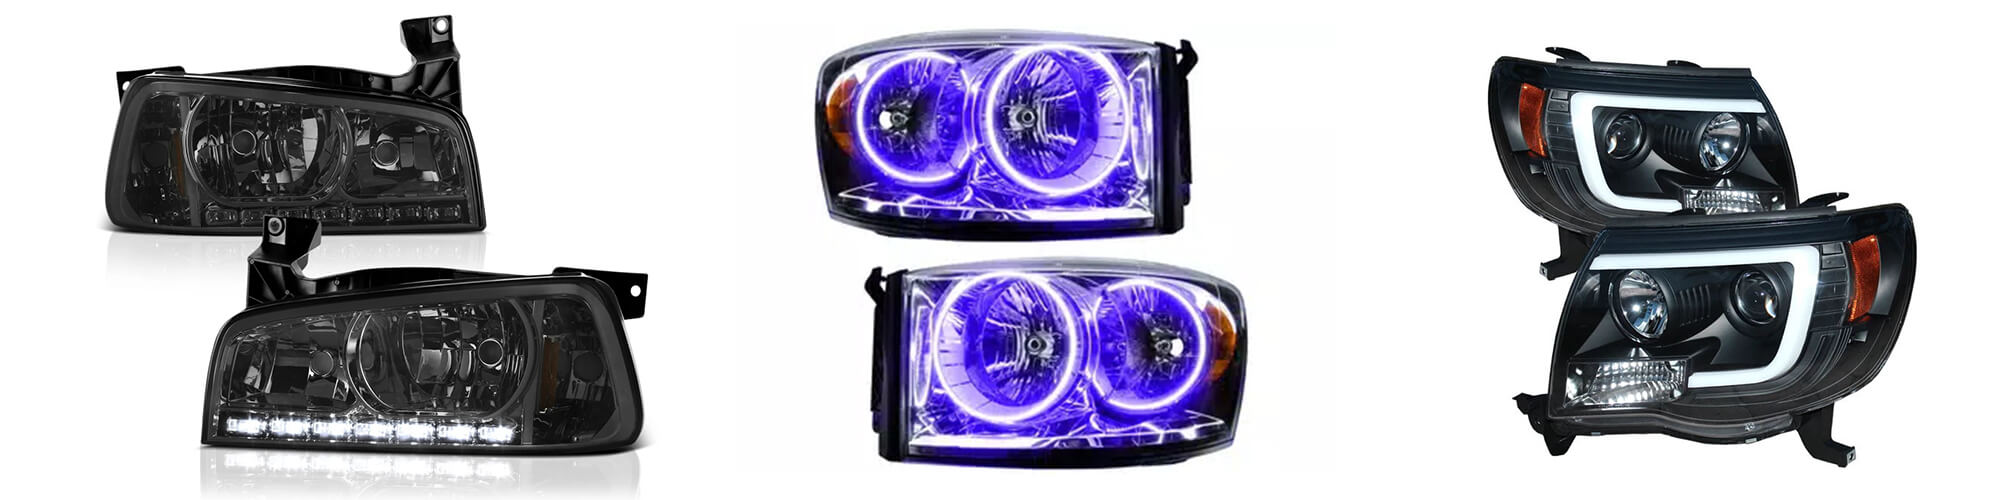 Aftermarket headlight assembly